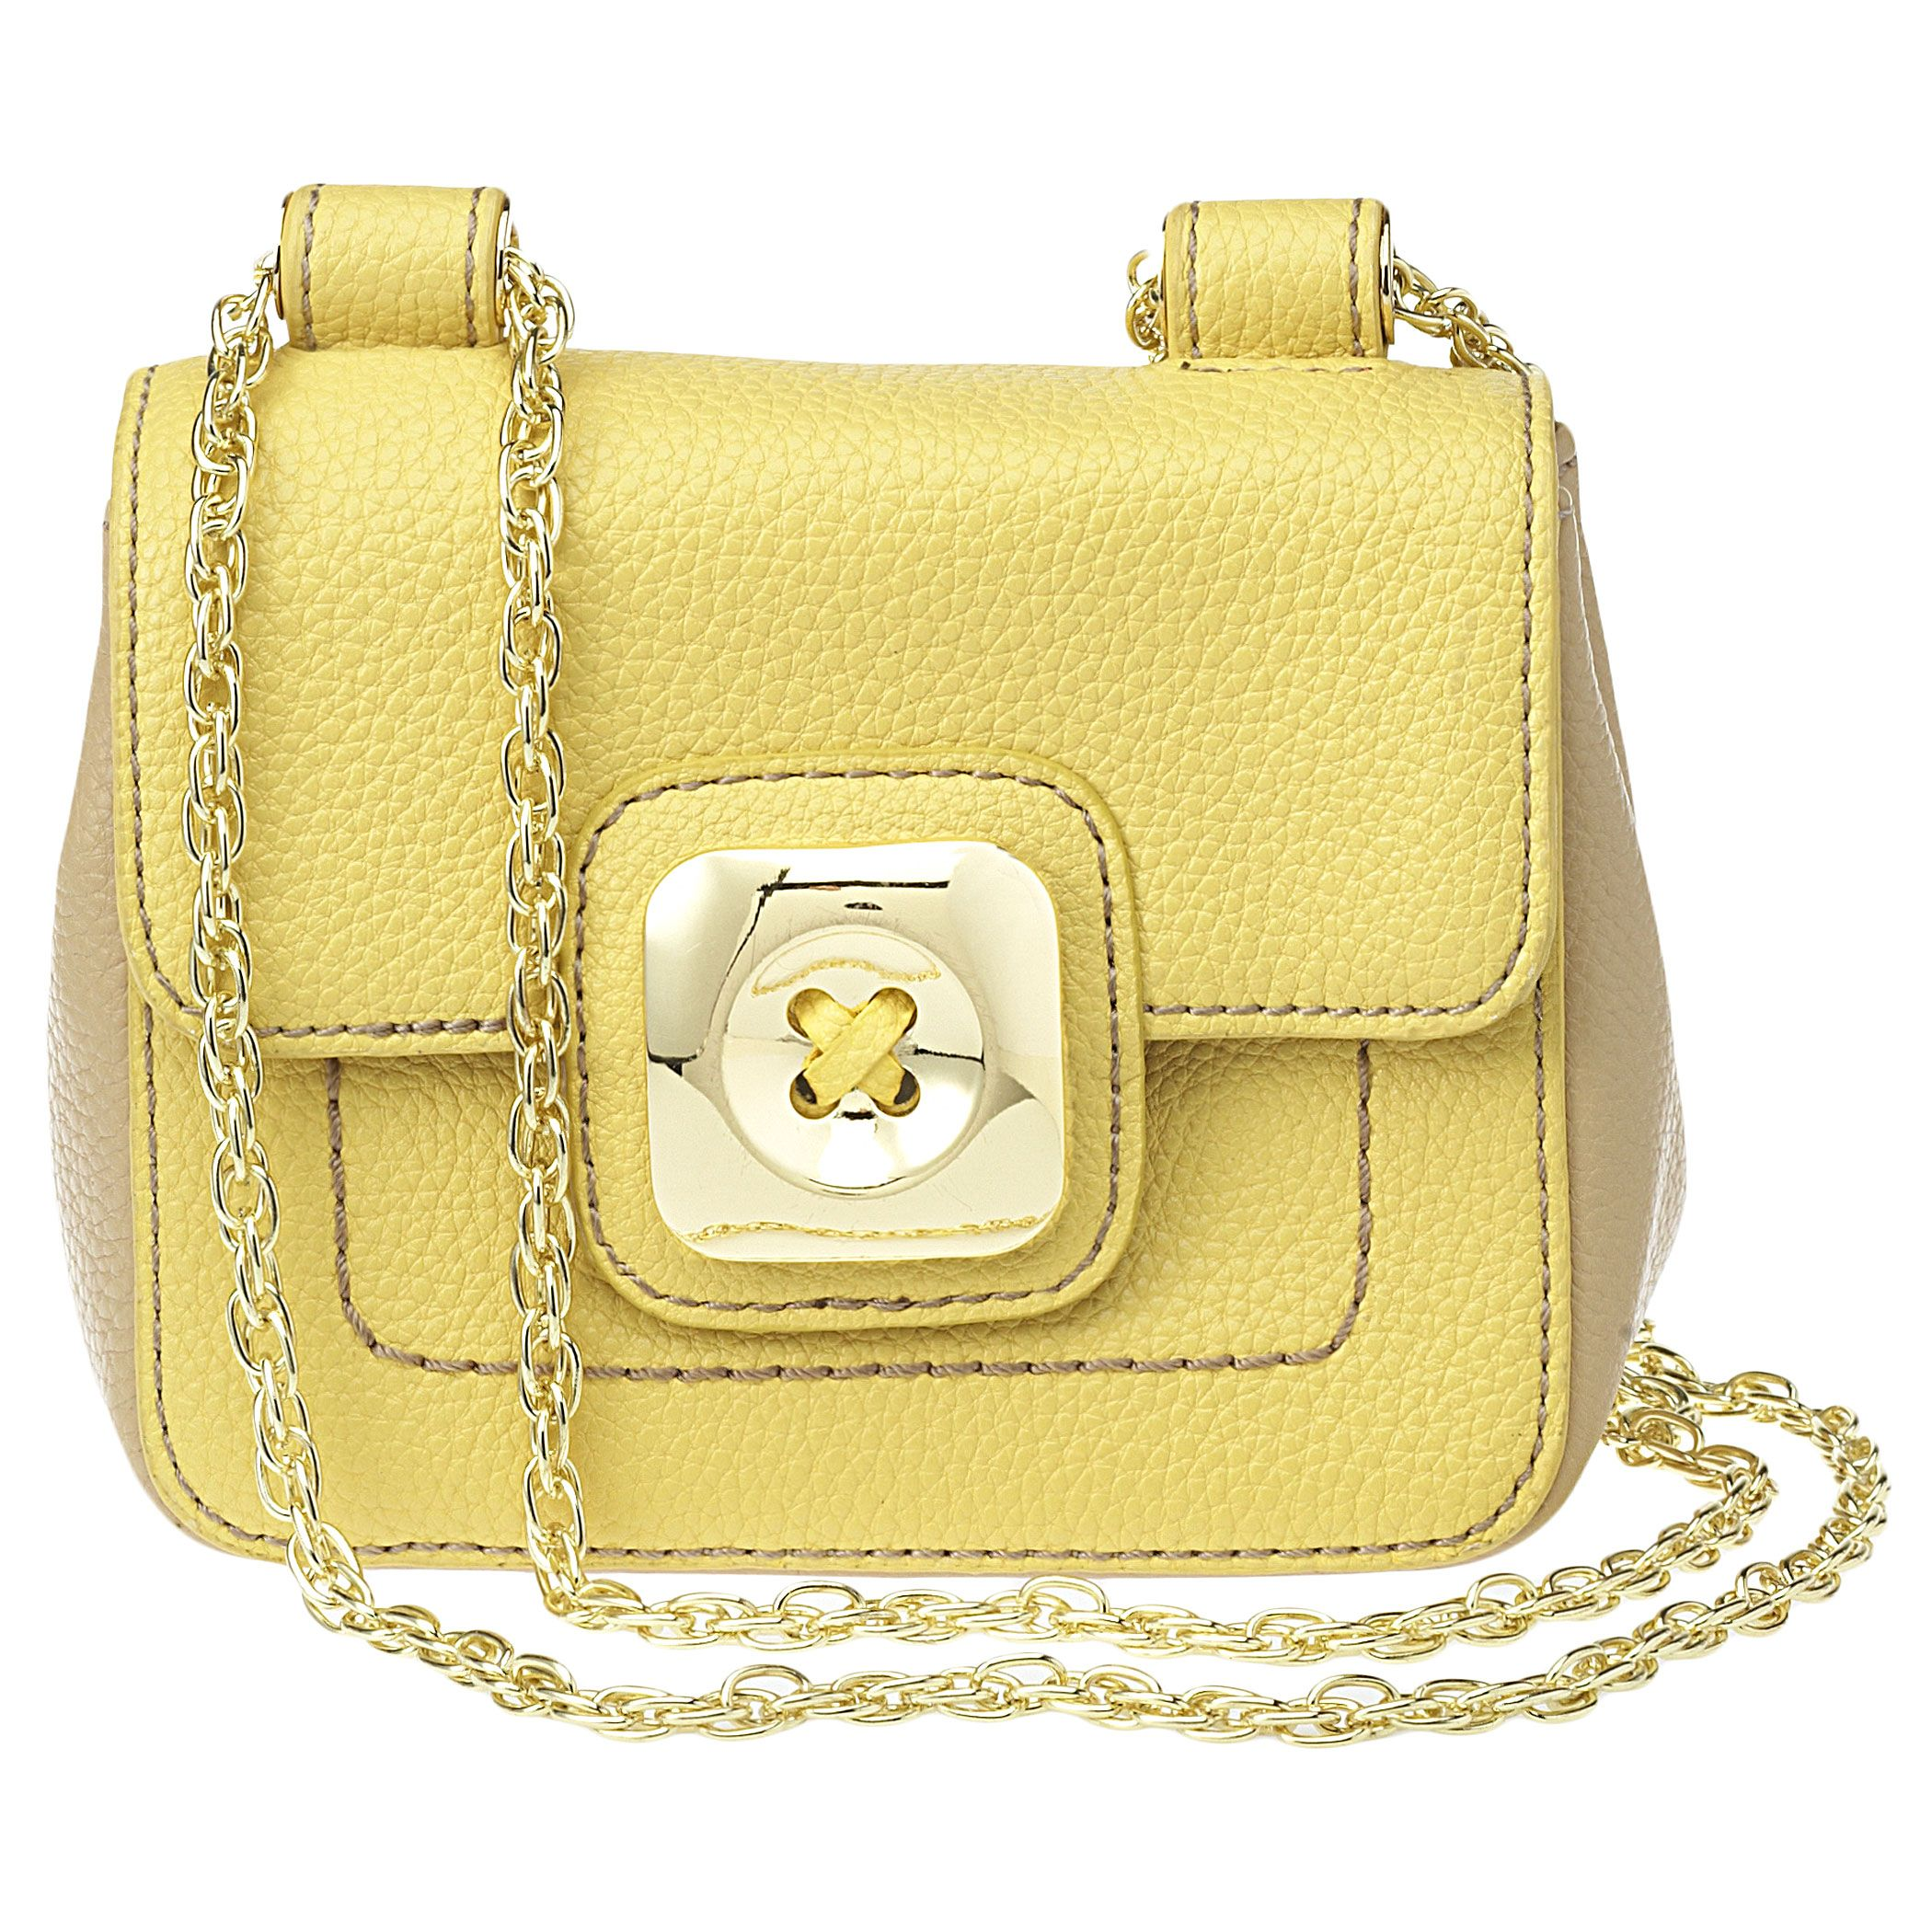 """Mini cross-body bag with metal hardware. The chain strap can be worn cross-body or doubled up for a shorter over the shoulder look. Inside features a slip pocket. Measures approx 6"""" L x 4 1/2"""" H x 2"""" D. Strap drop fully extended is 23"""", doubled strap drop is 13""""."""